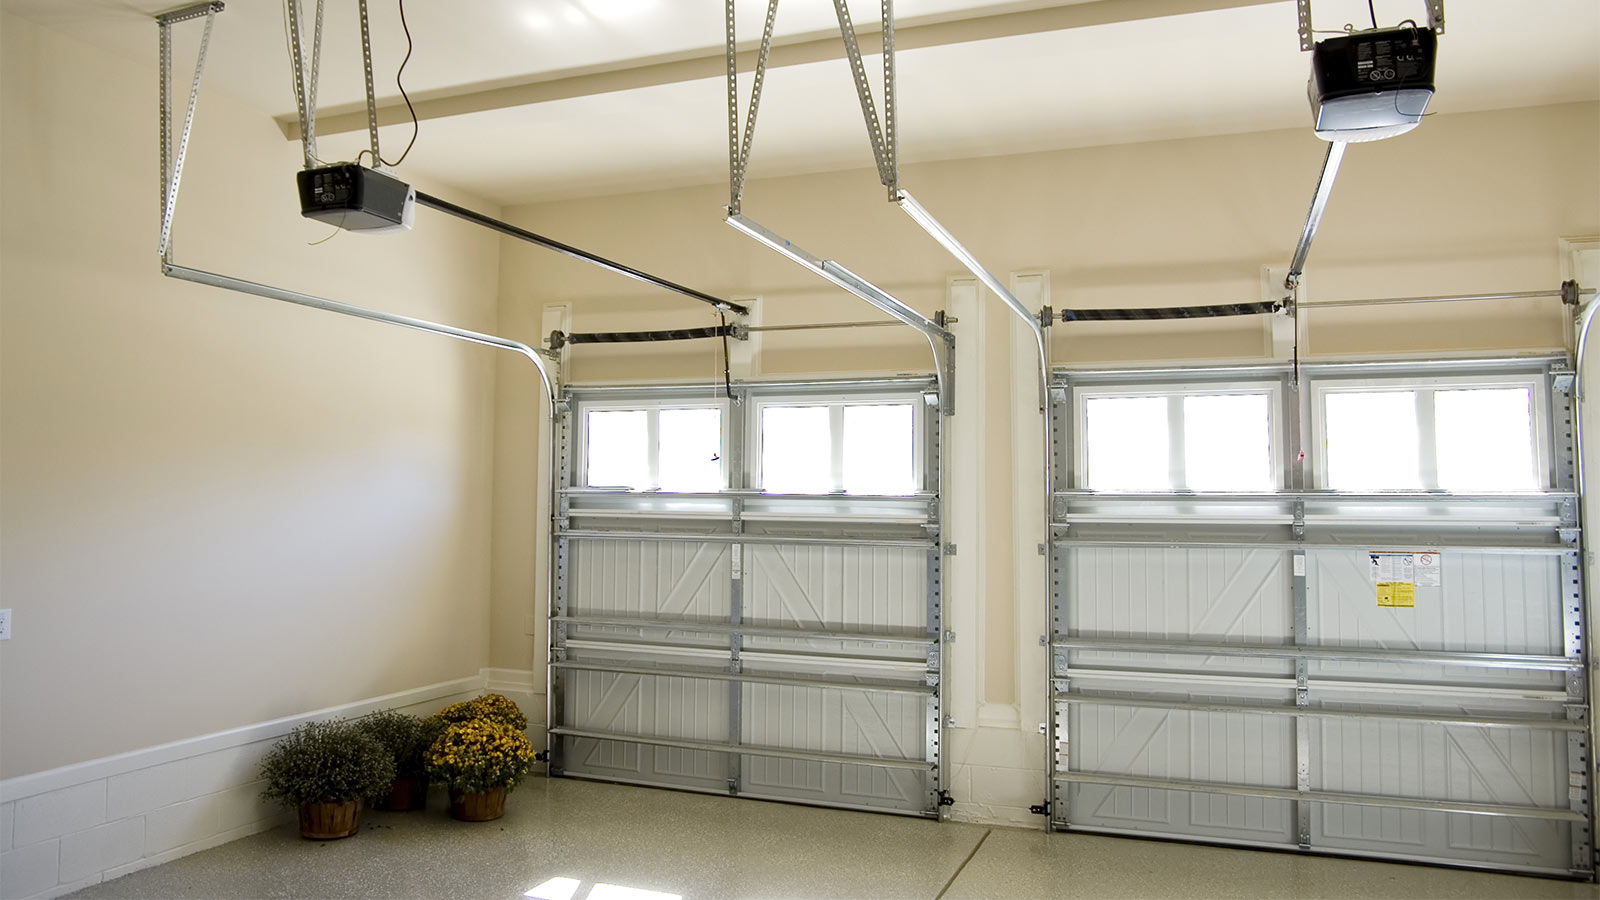 Sectional Garage Doors from Steel Security Doors Basildon suppliers.